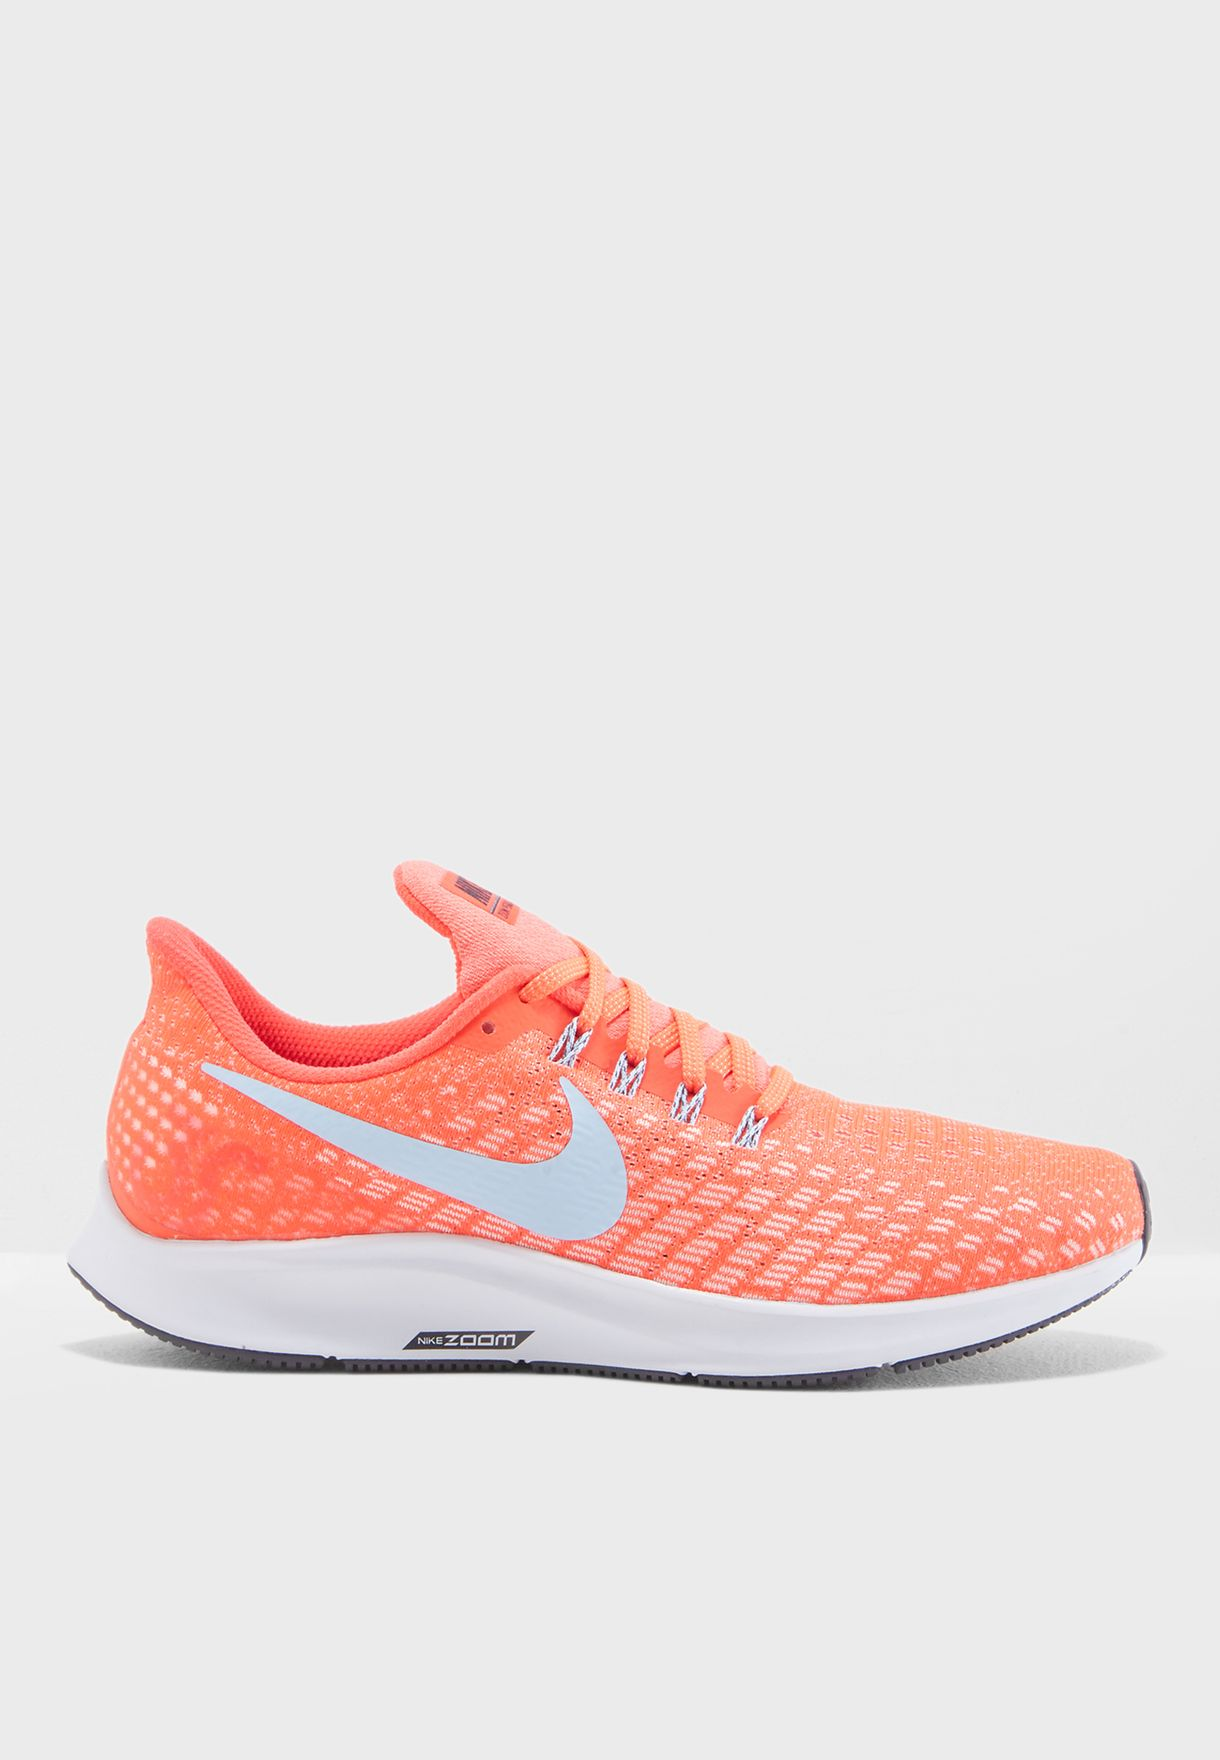 8ae989195d9c Shop Nike pink Air Zoom Pegasus 35 942855-600 for Women in UAE ...